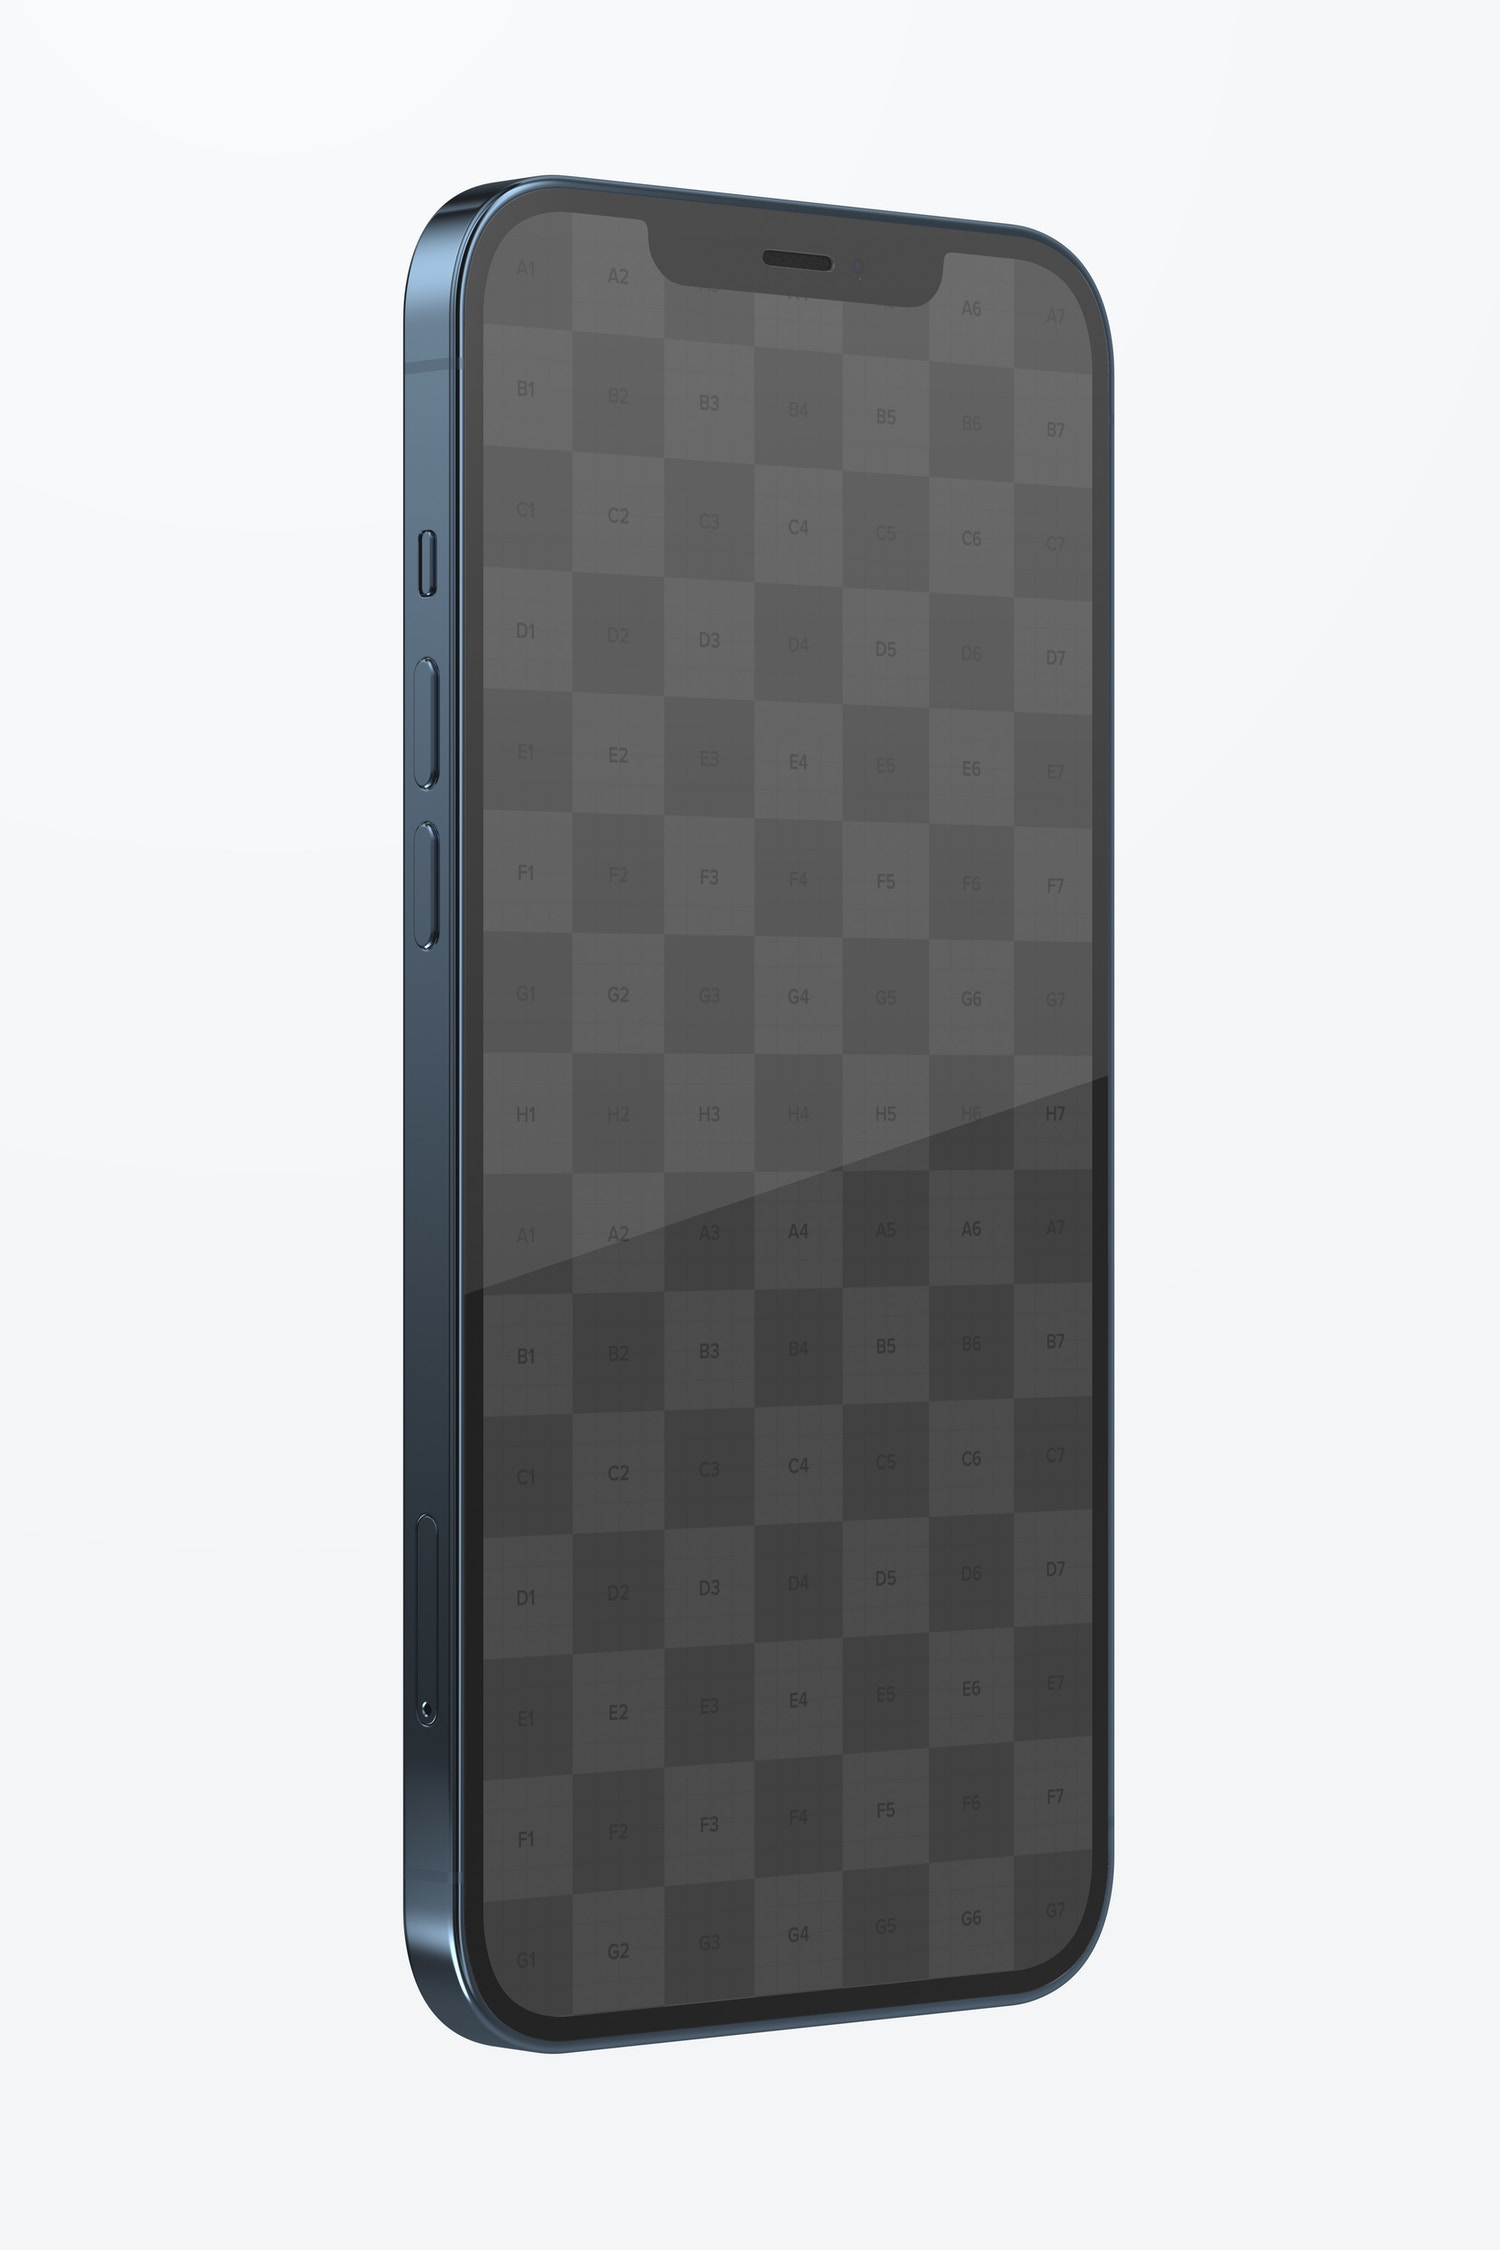 iPhone 12 Mockup, Right Side View